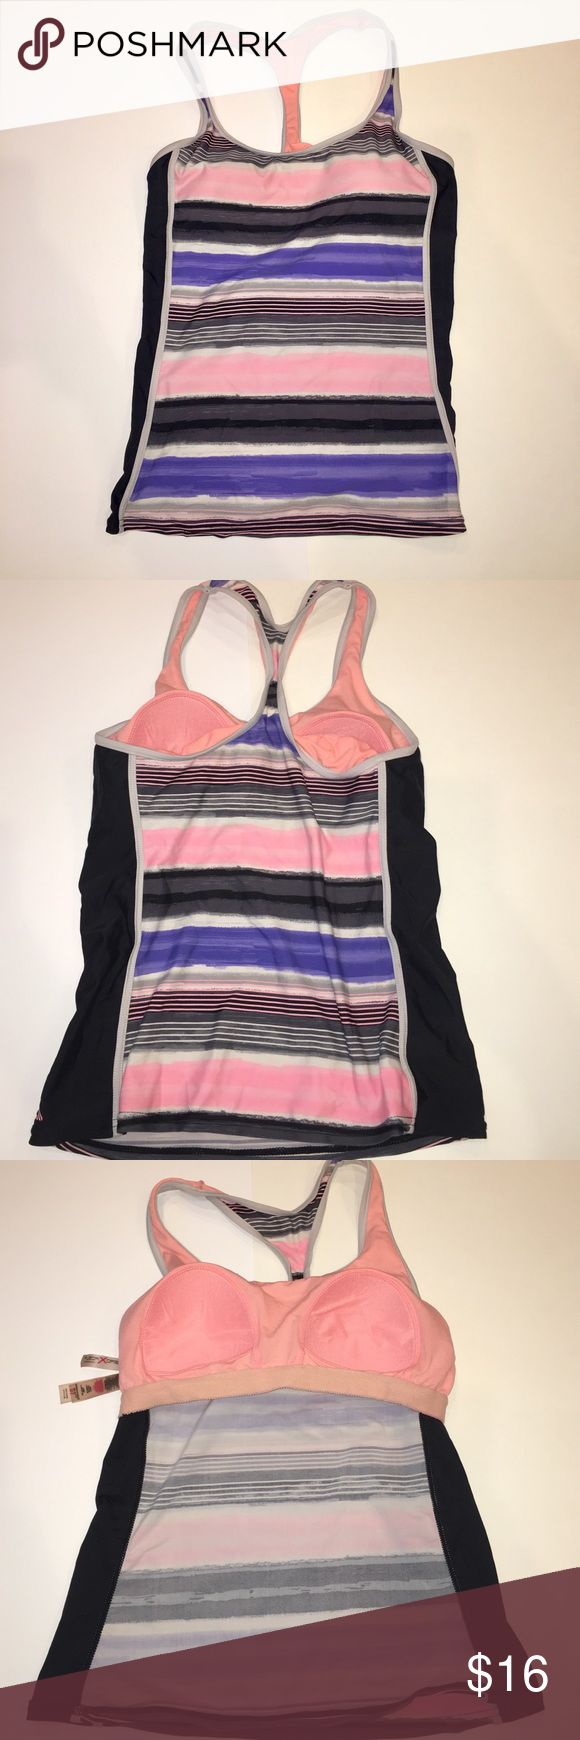 Multicolored tankini Minimal wear. Swimsuit top is in great condition. It has padded cups on the interior. ZeroXposur Swim